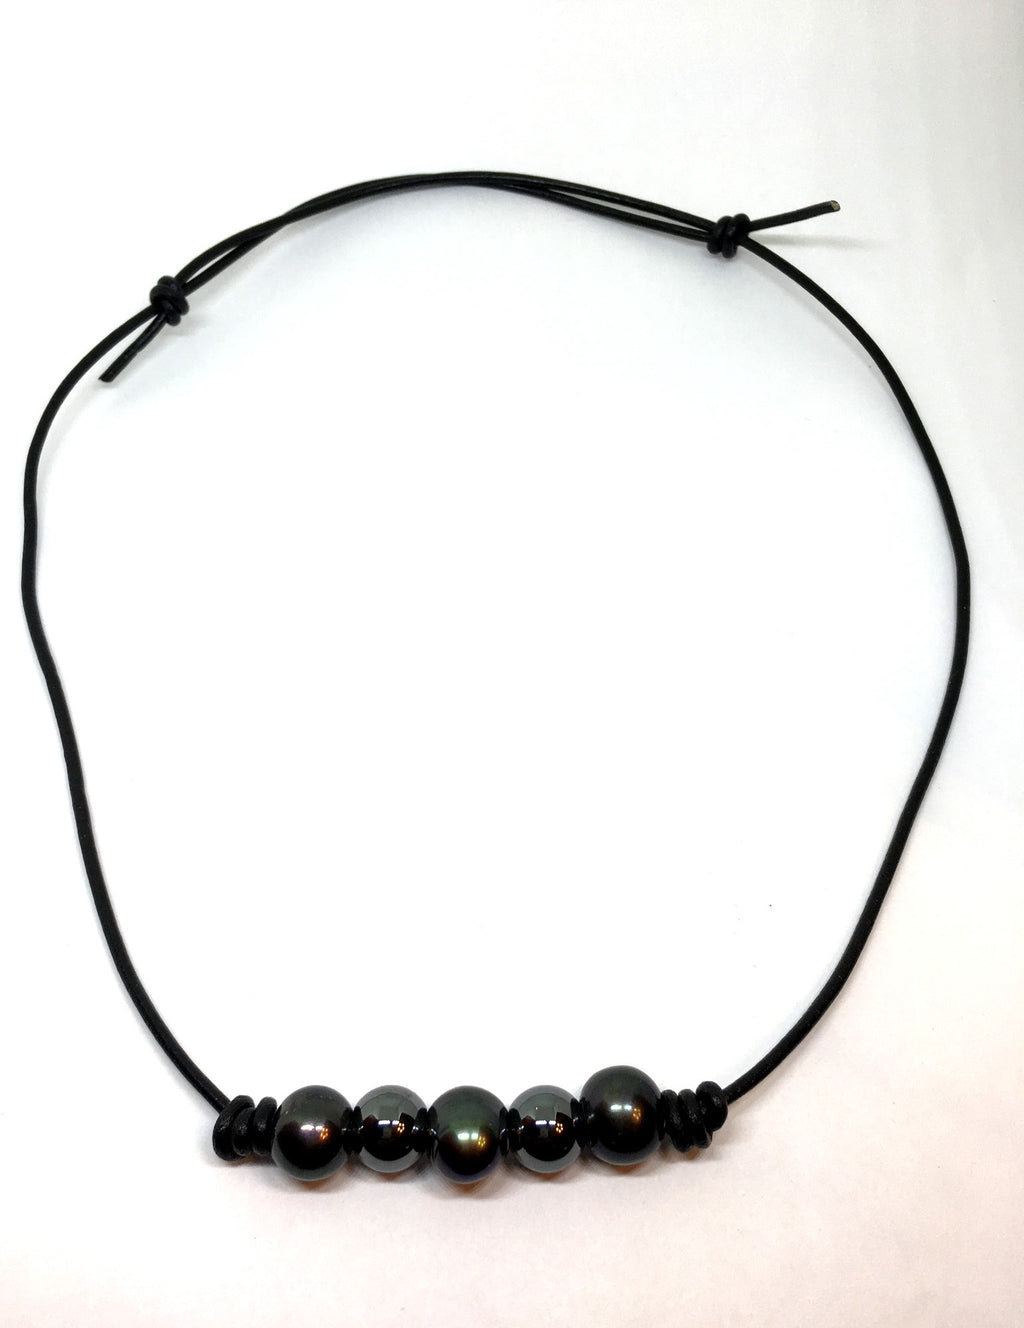 Black Pearl and Hematite Adjustable Knotted Black Leather Necklace